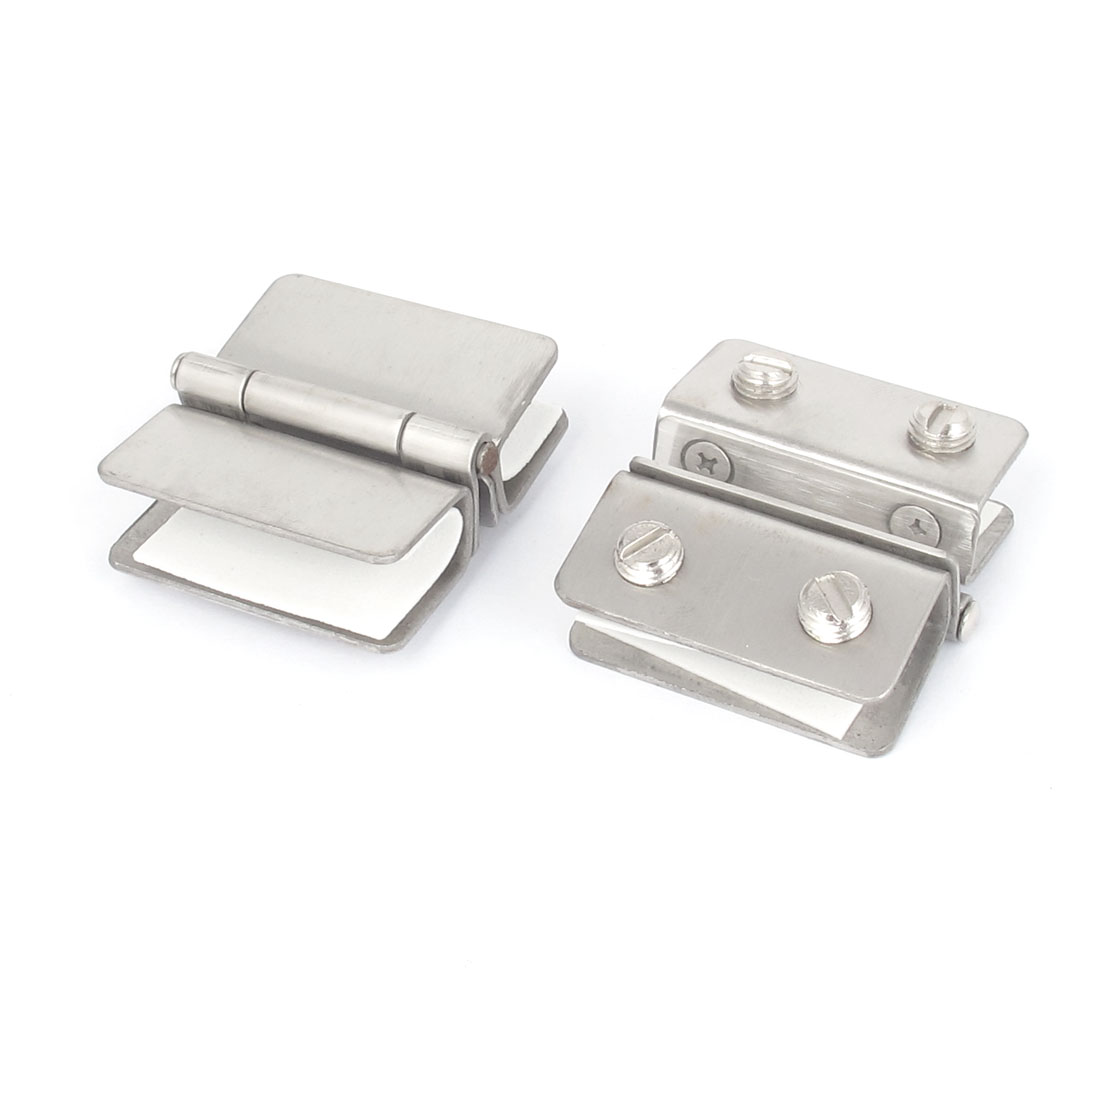 2pcs Silver Tone Metal Adjustable Screw Rectangle Shape Door Hinge Glass Clamp Clip Holder